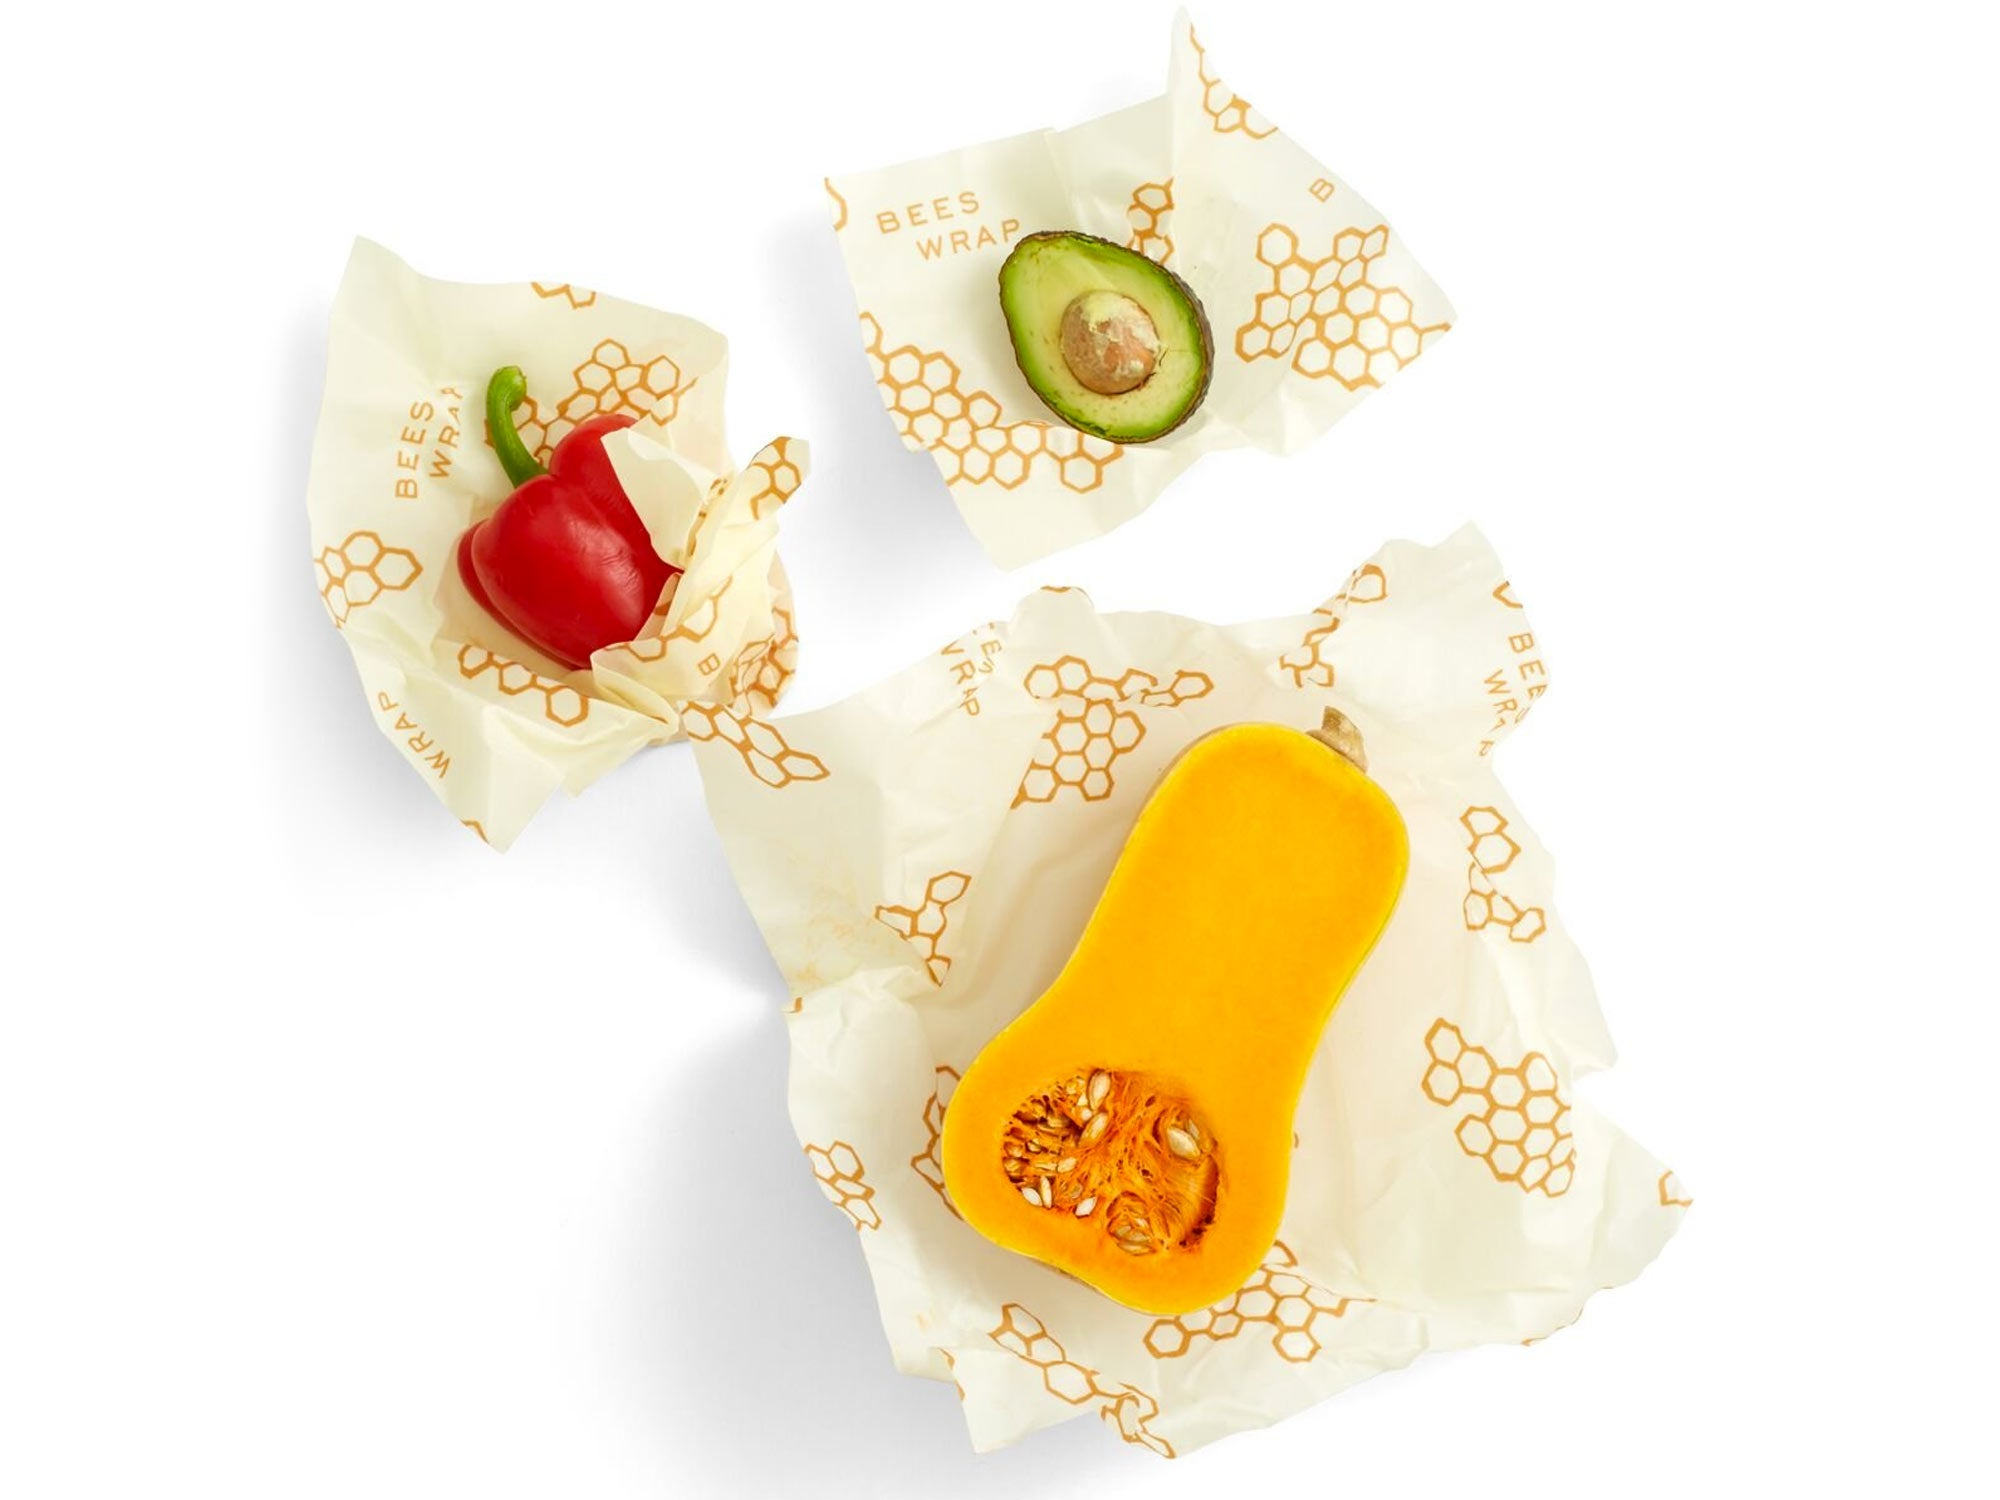 Bees Wrap Food Wrap